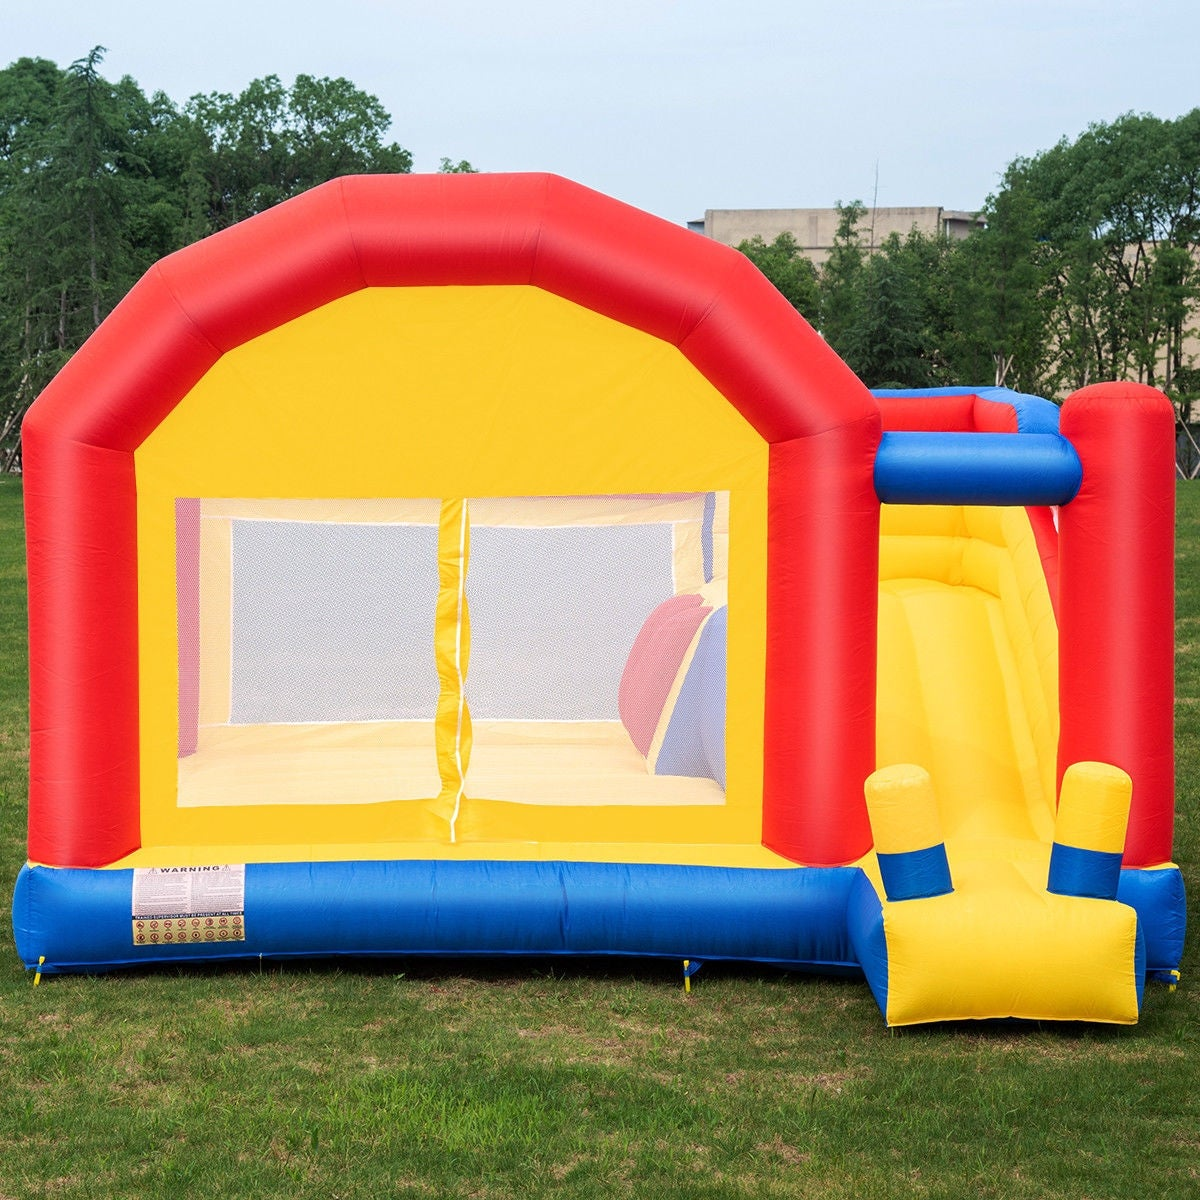 e9fb933a0a2 Shop Costway Inflatable Bounce House Slide Bouncer Castle Jumper Playhouse  without Blower - as pic - Free Shipping Today - Overstock - 22591202